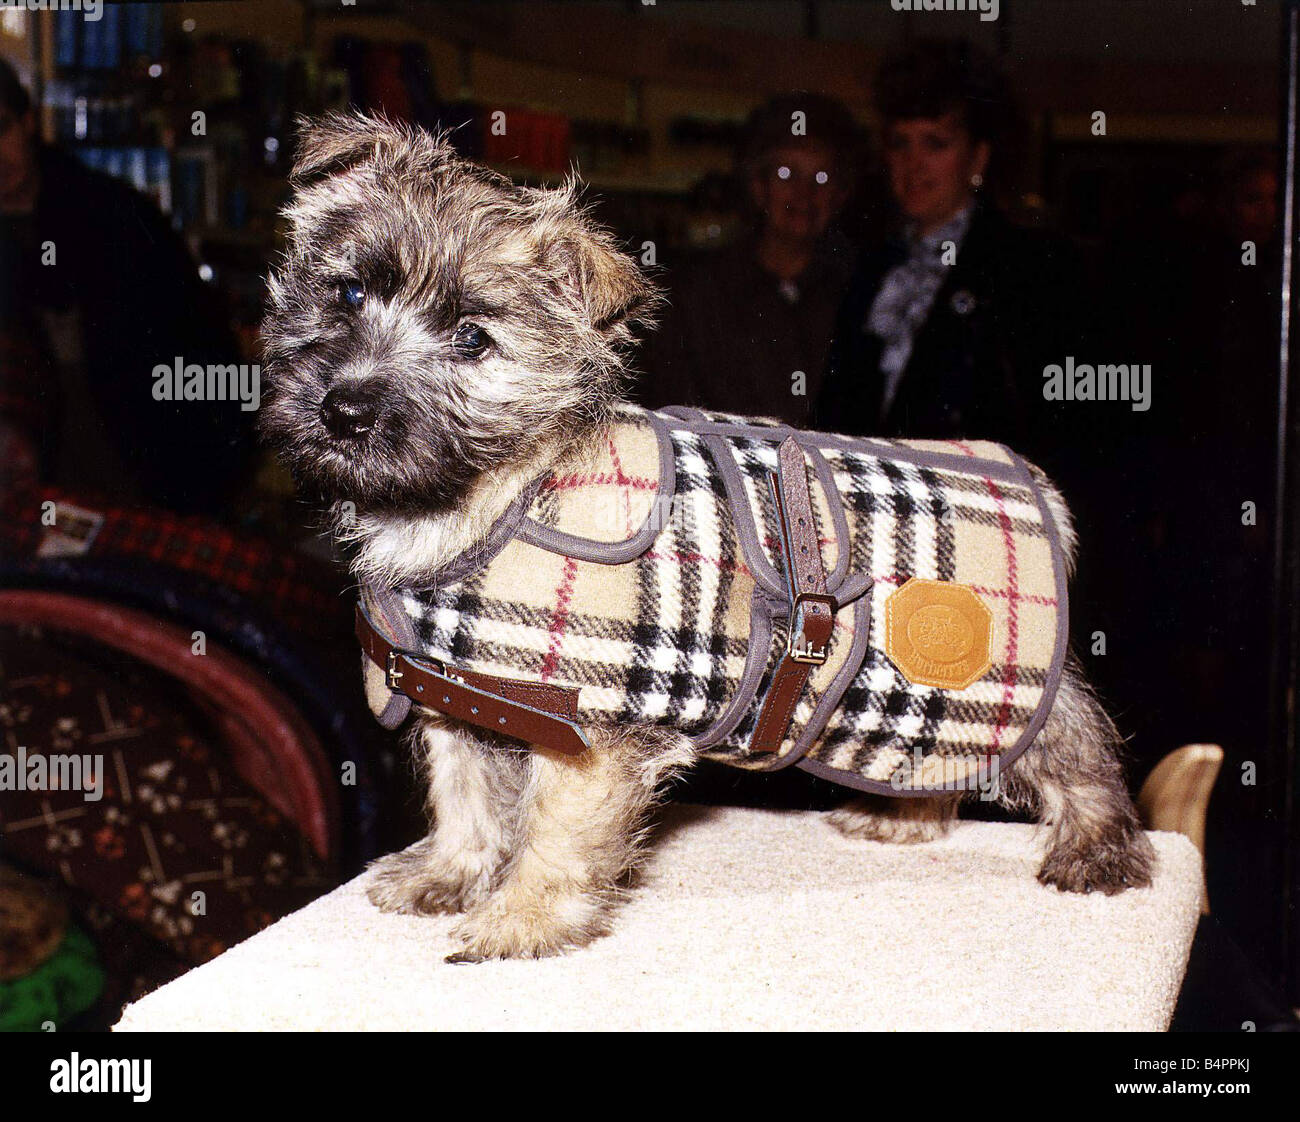 027925bc2c322 Burberry manteau pour chien en 43 circa 1995 Photo Stock